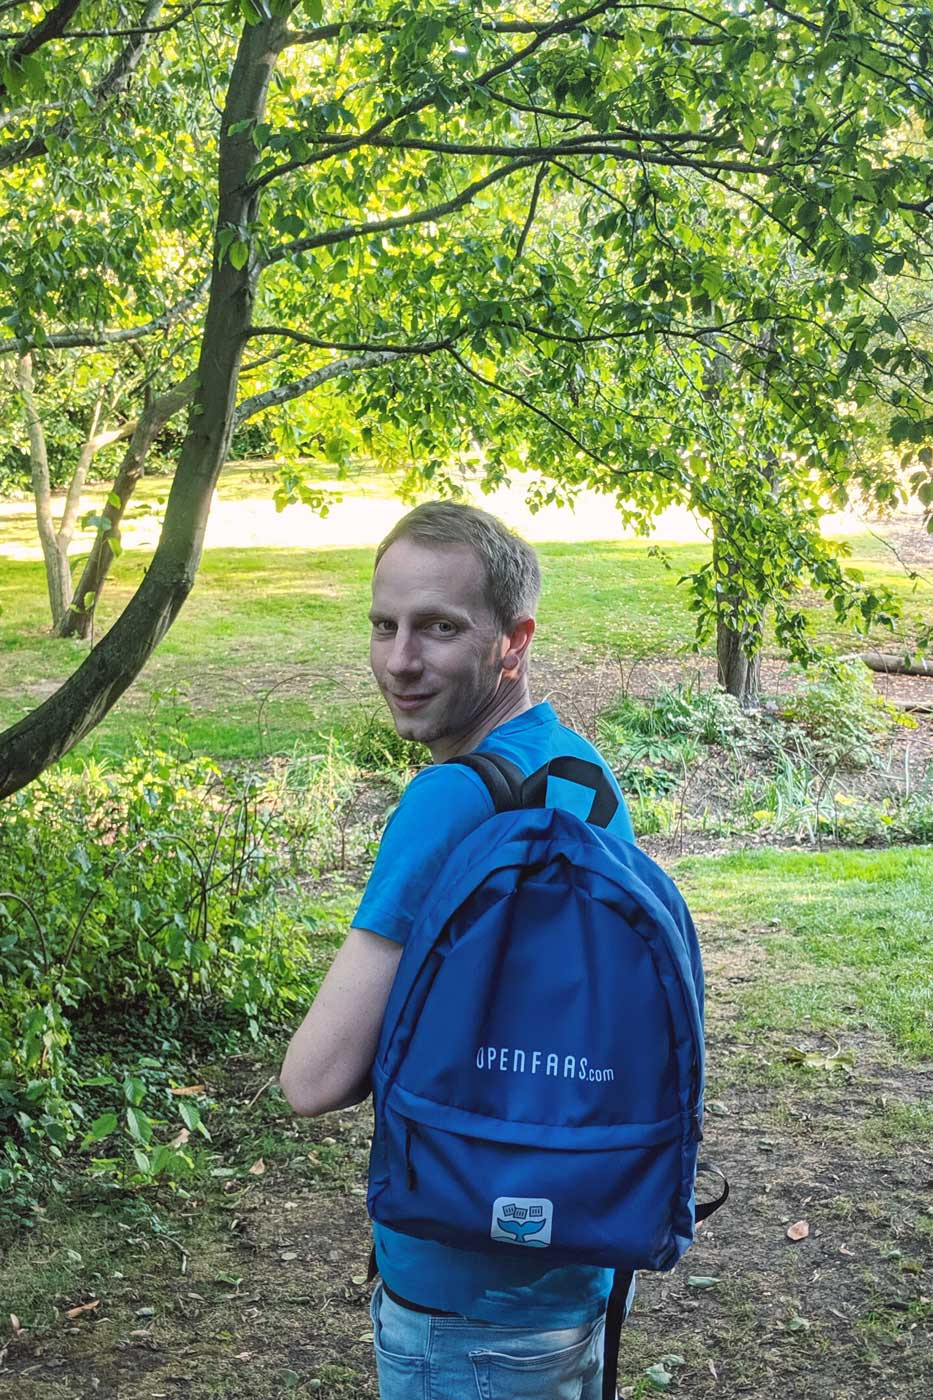 Photo of Alex Ellis surrounded by greenery, wearing an OpenFaaS branded backpack.